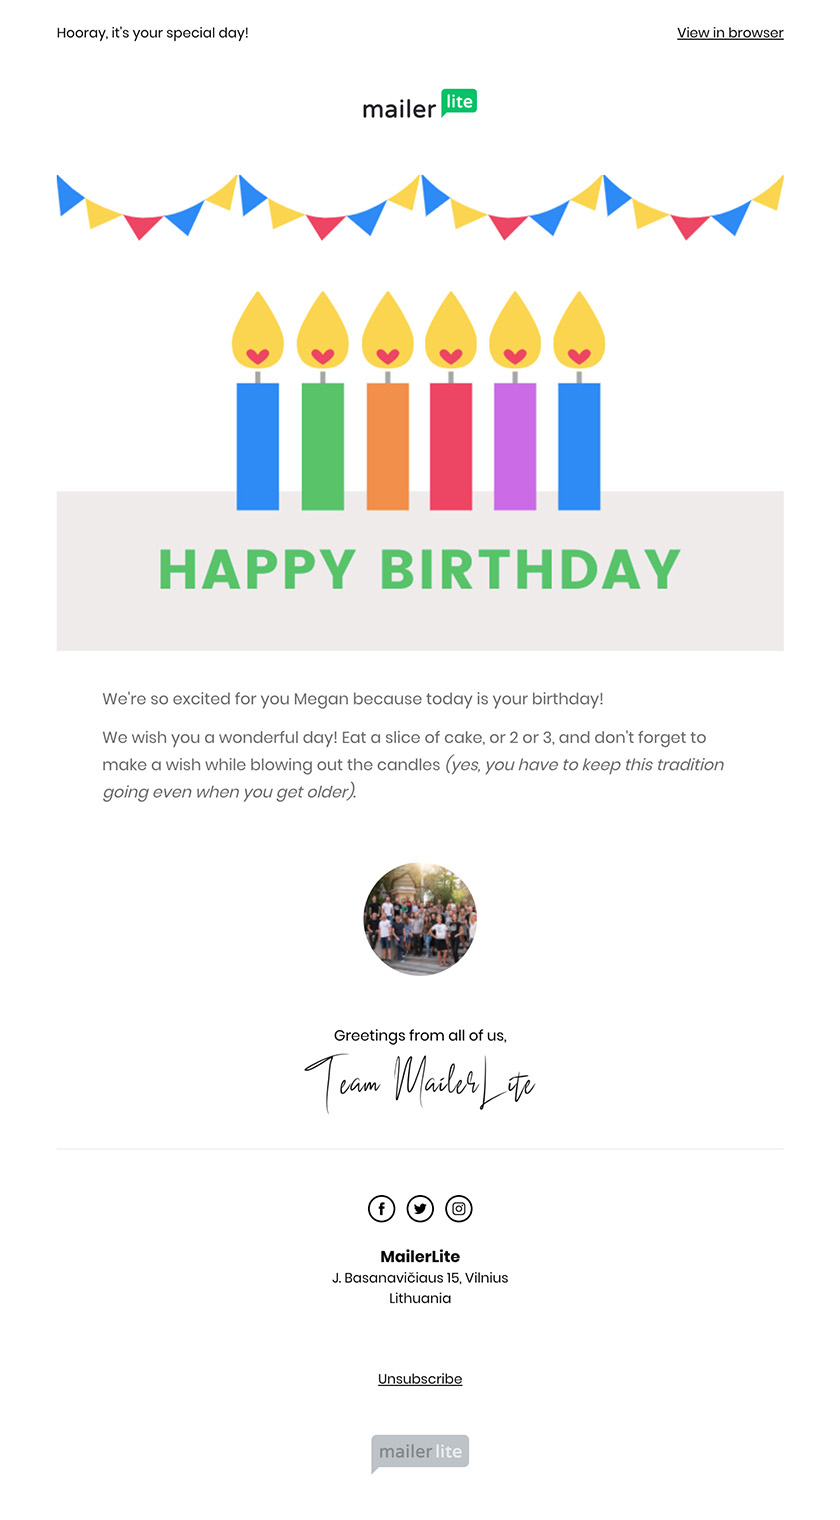 Happy birthday email MailerLite